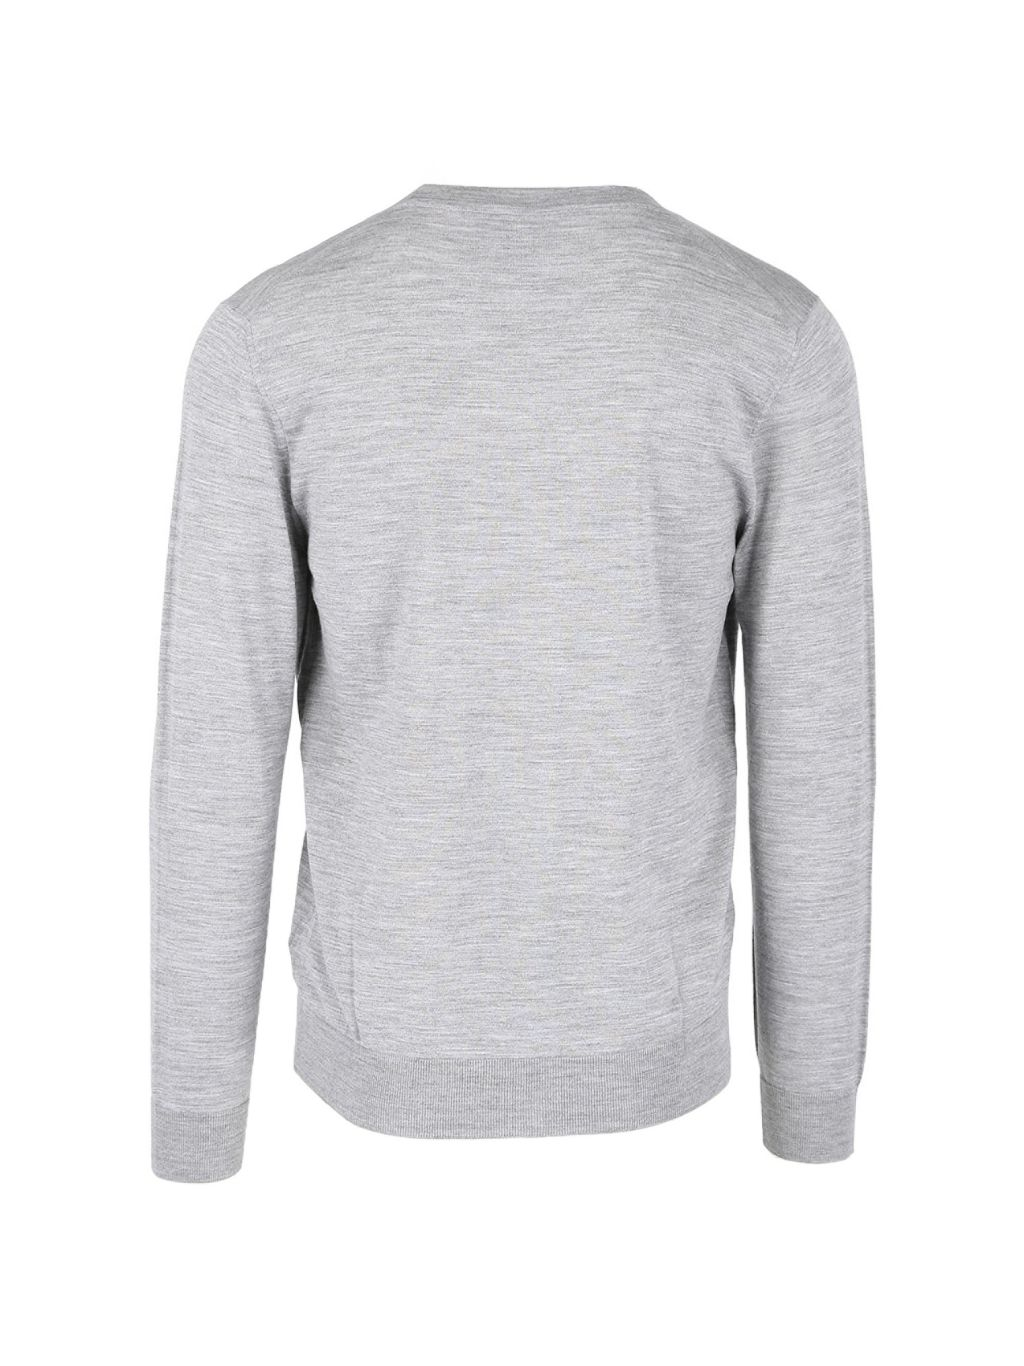 Dunhill Merino Wool Button-Up Sweater